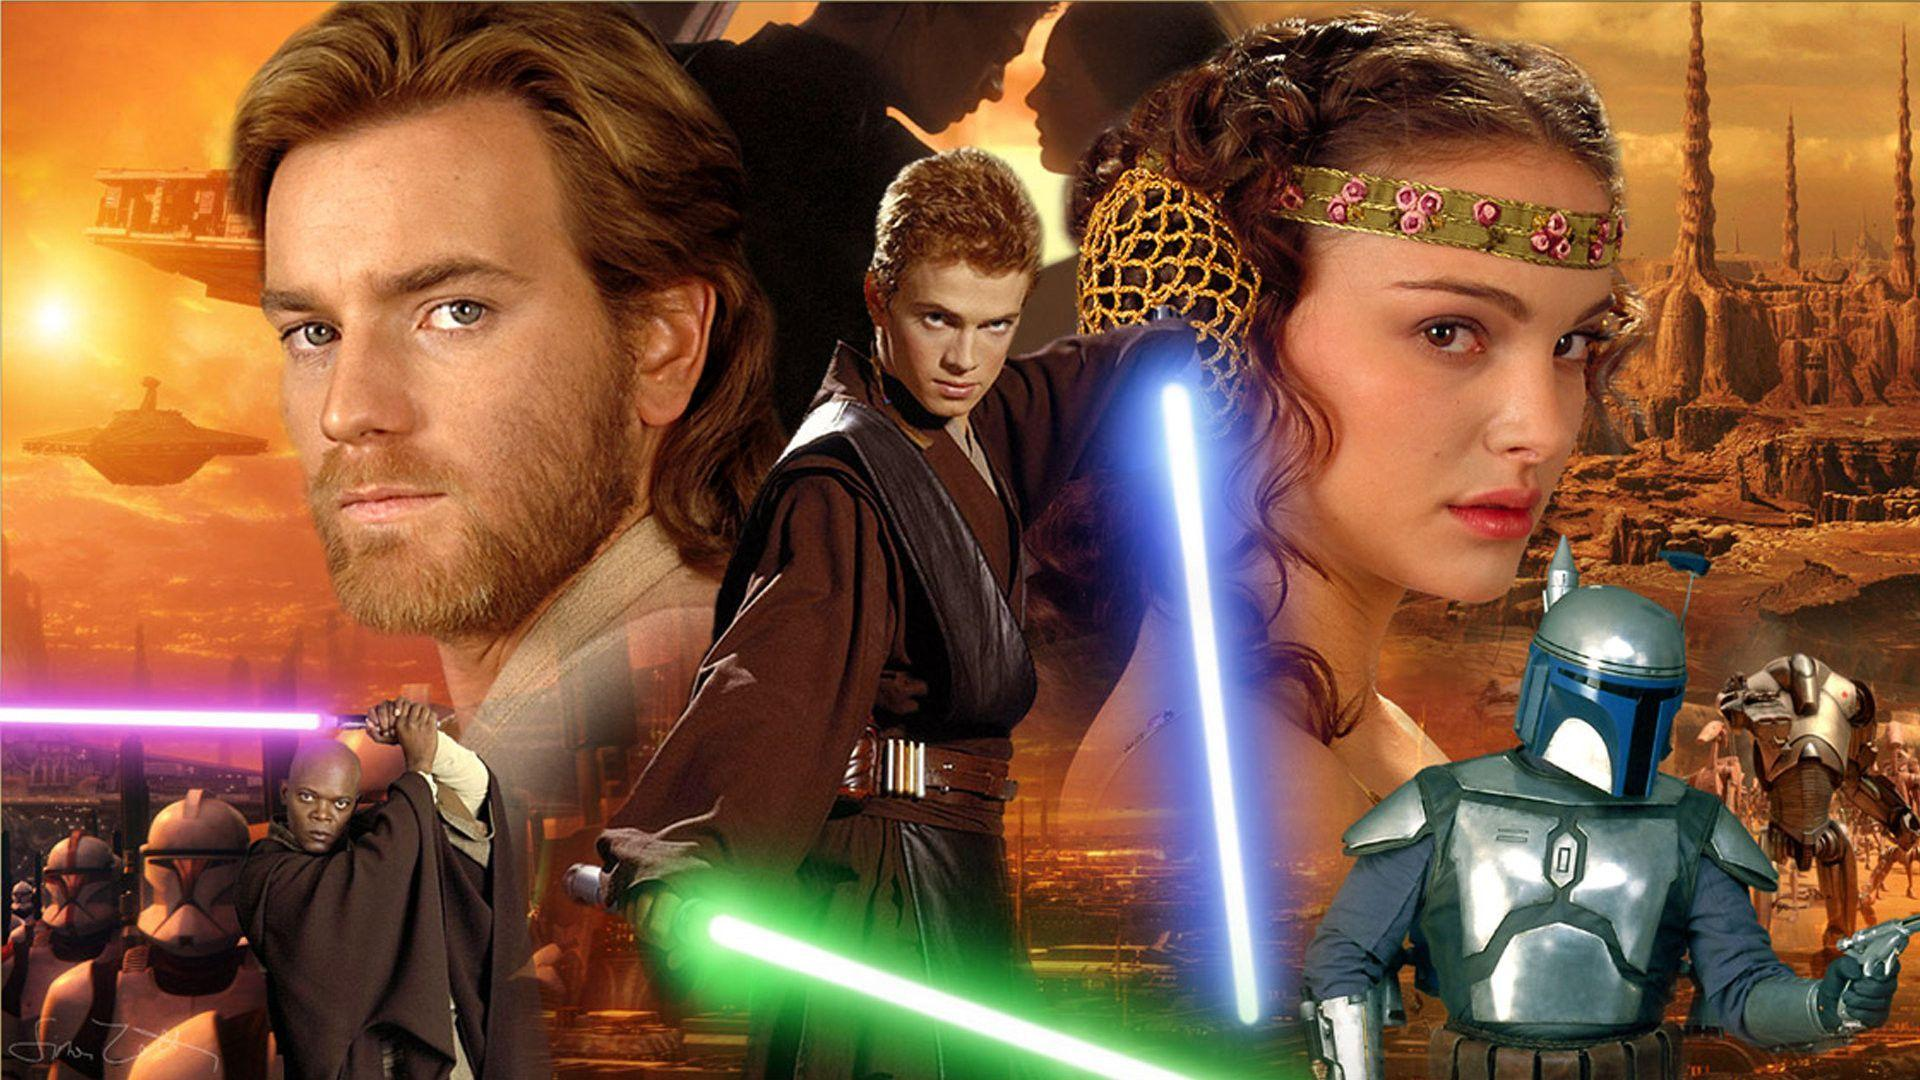 Star Wars Episode II – Attack of the Clones Wallpapers 6